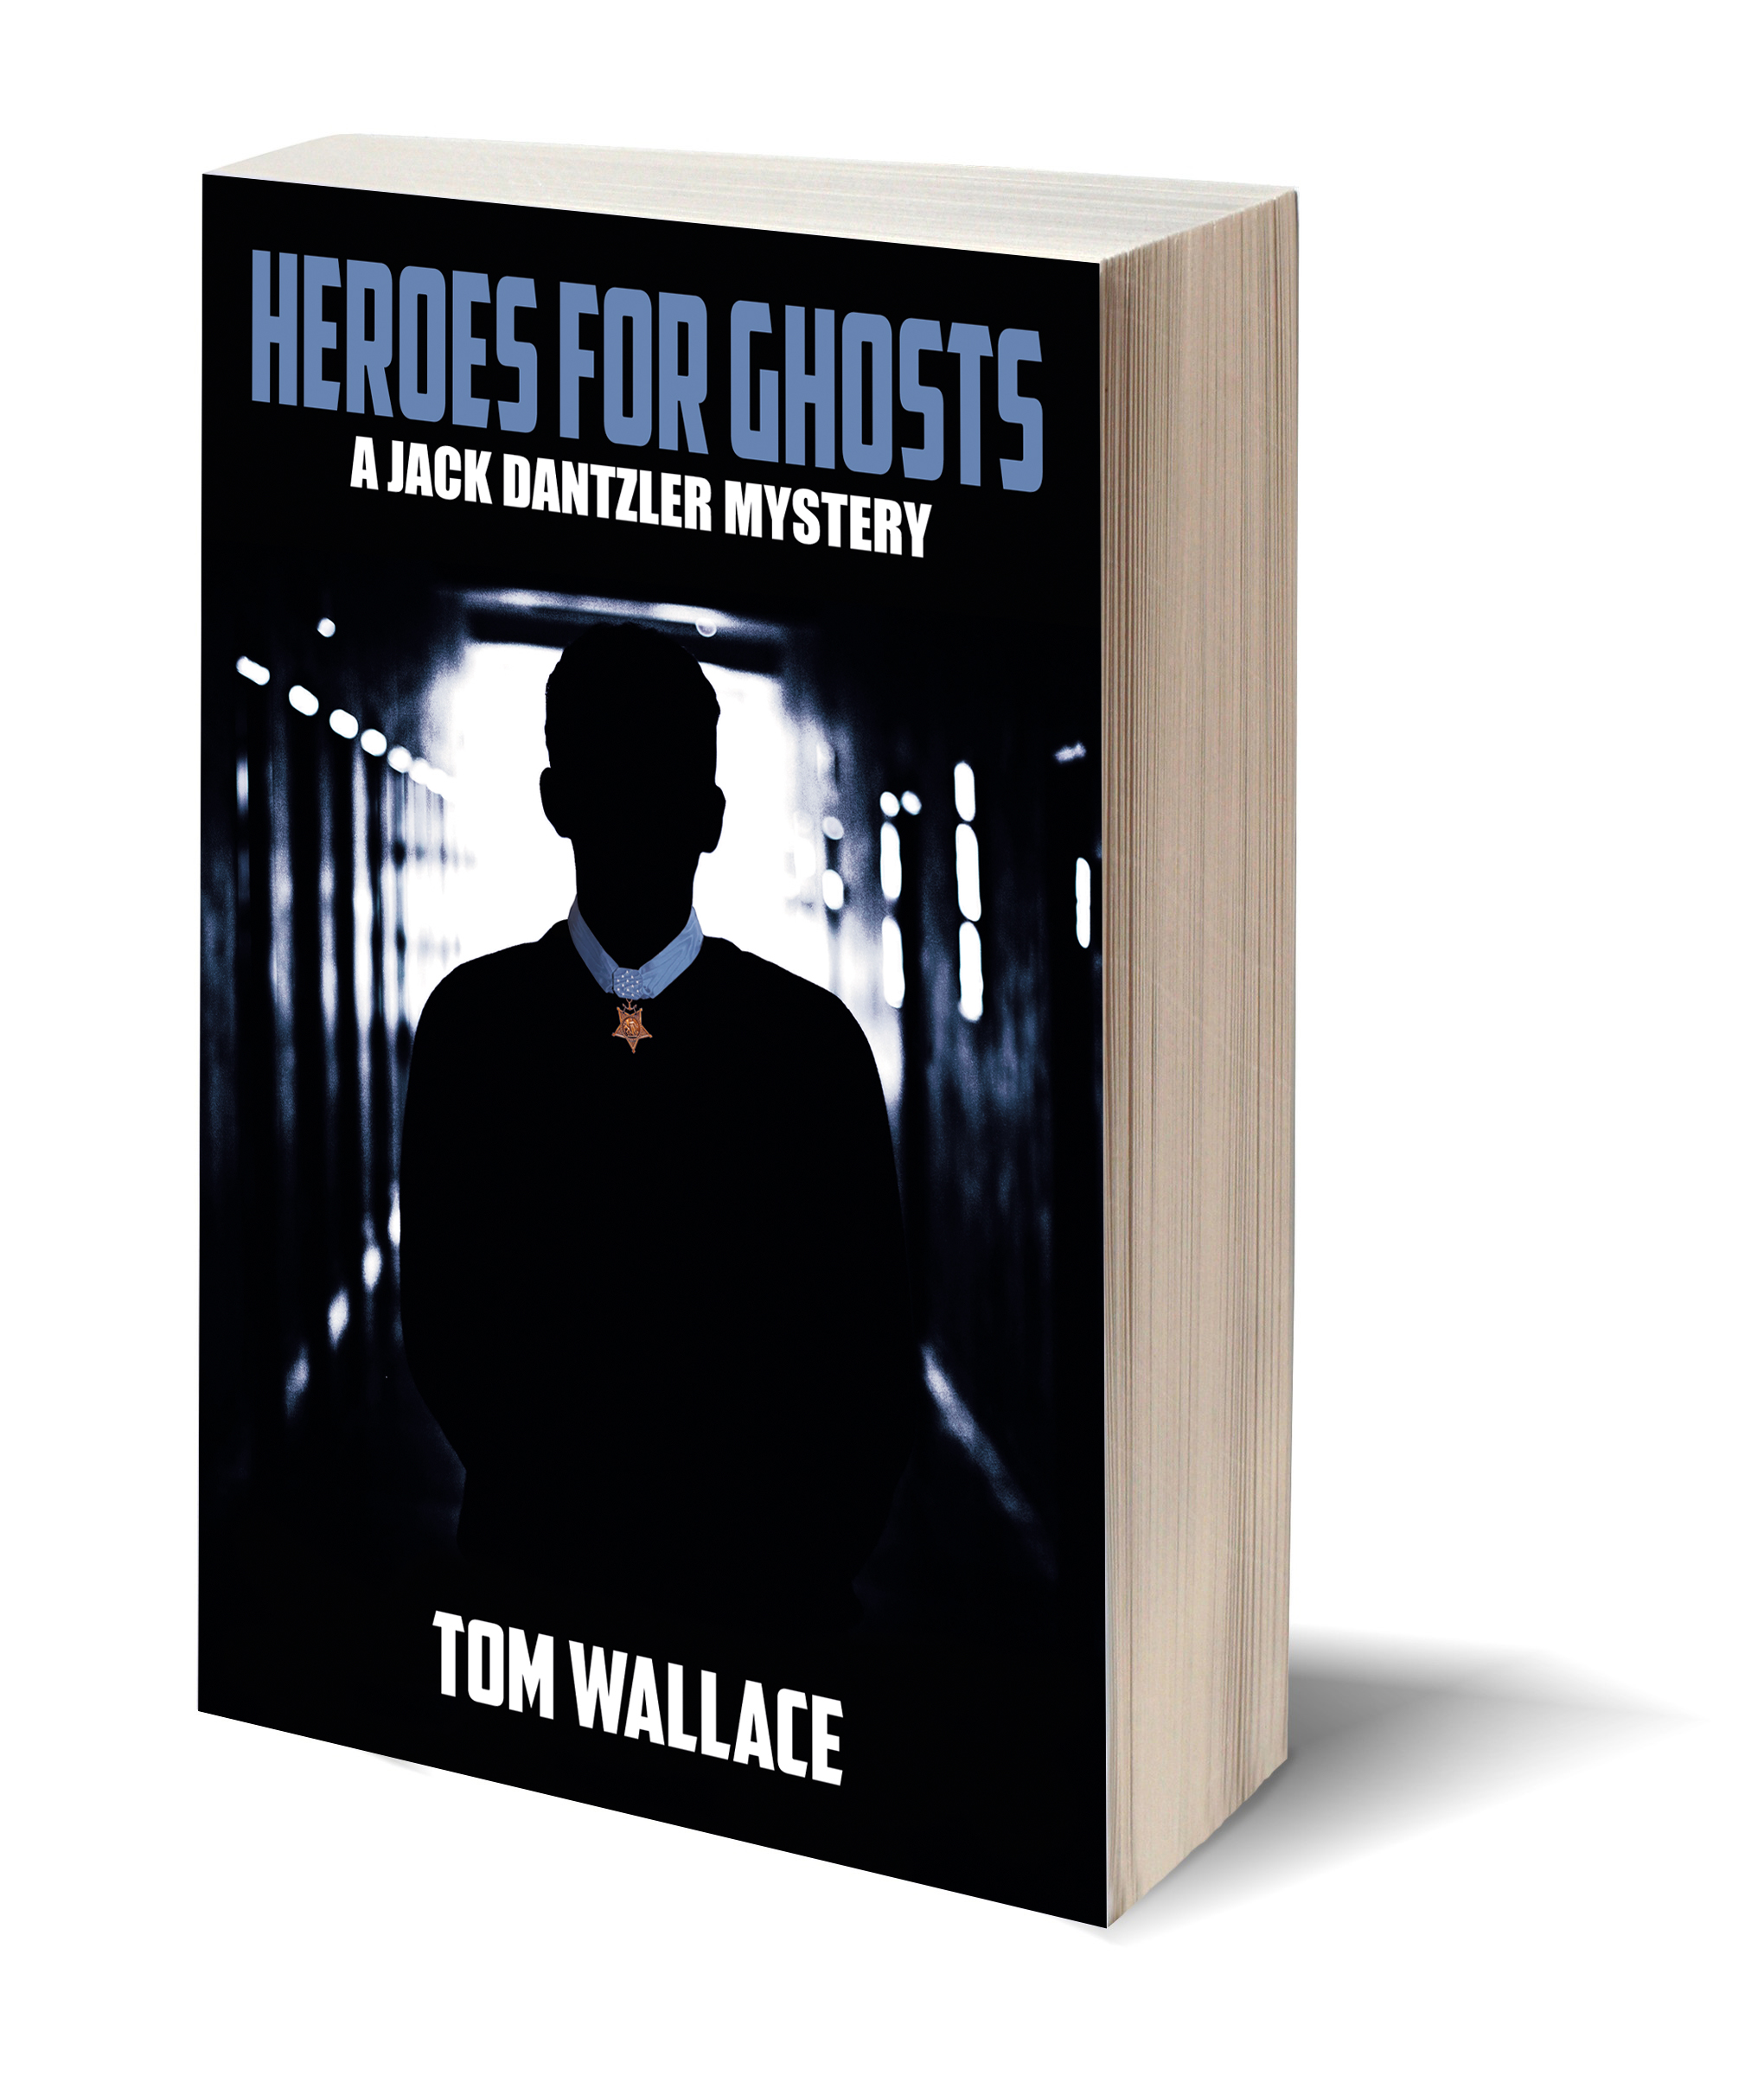 Heroes for Ghosts3D